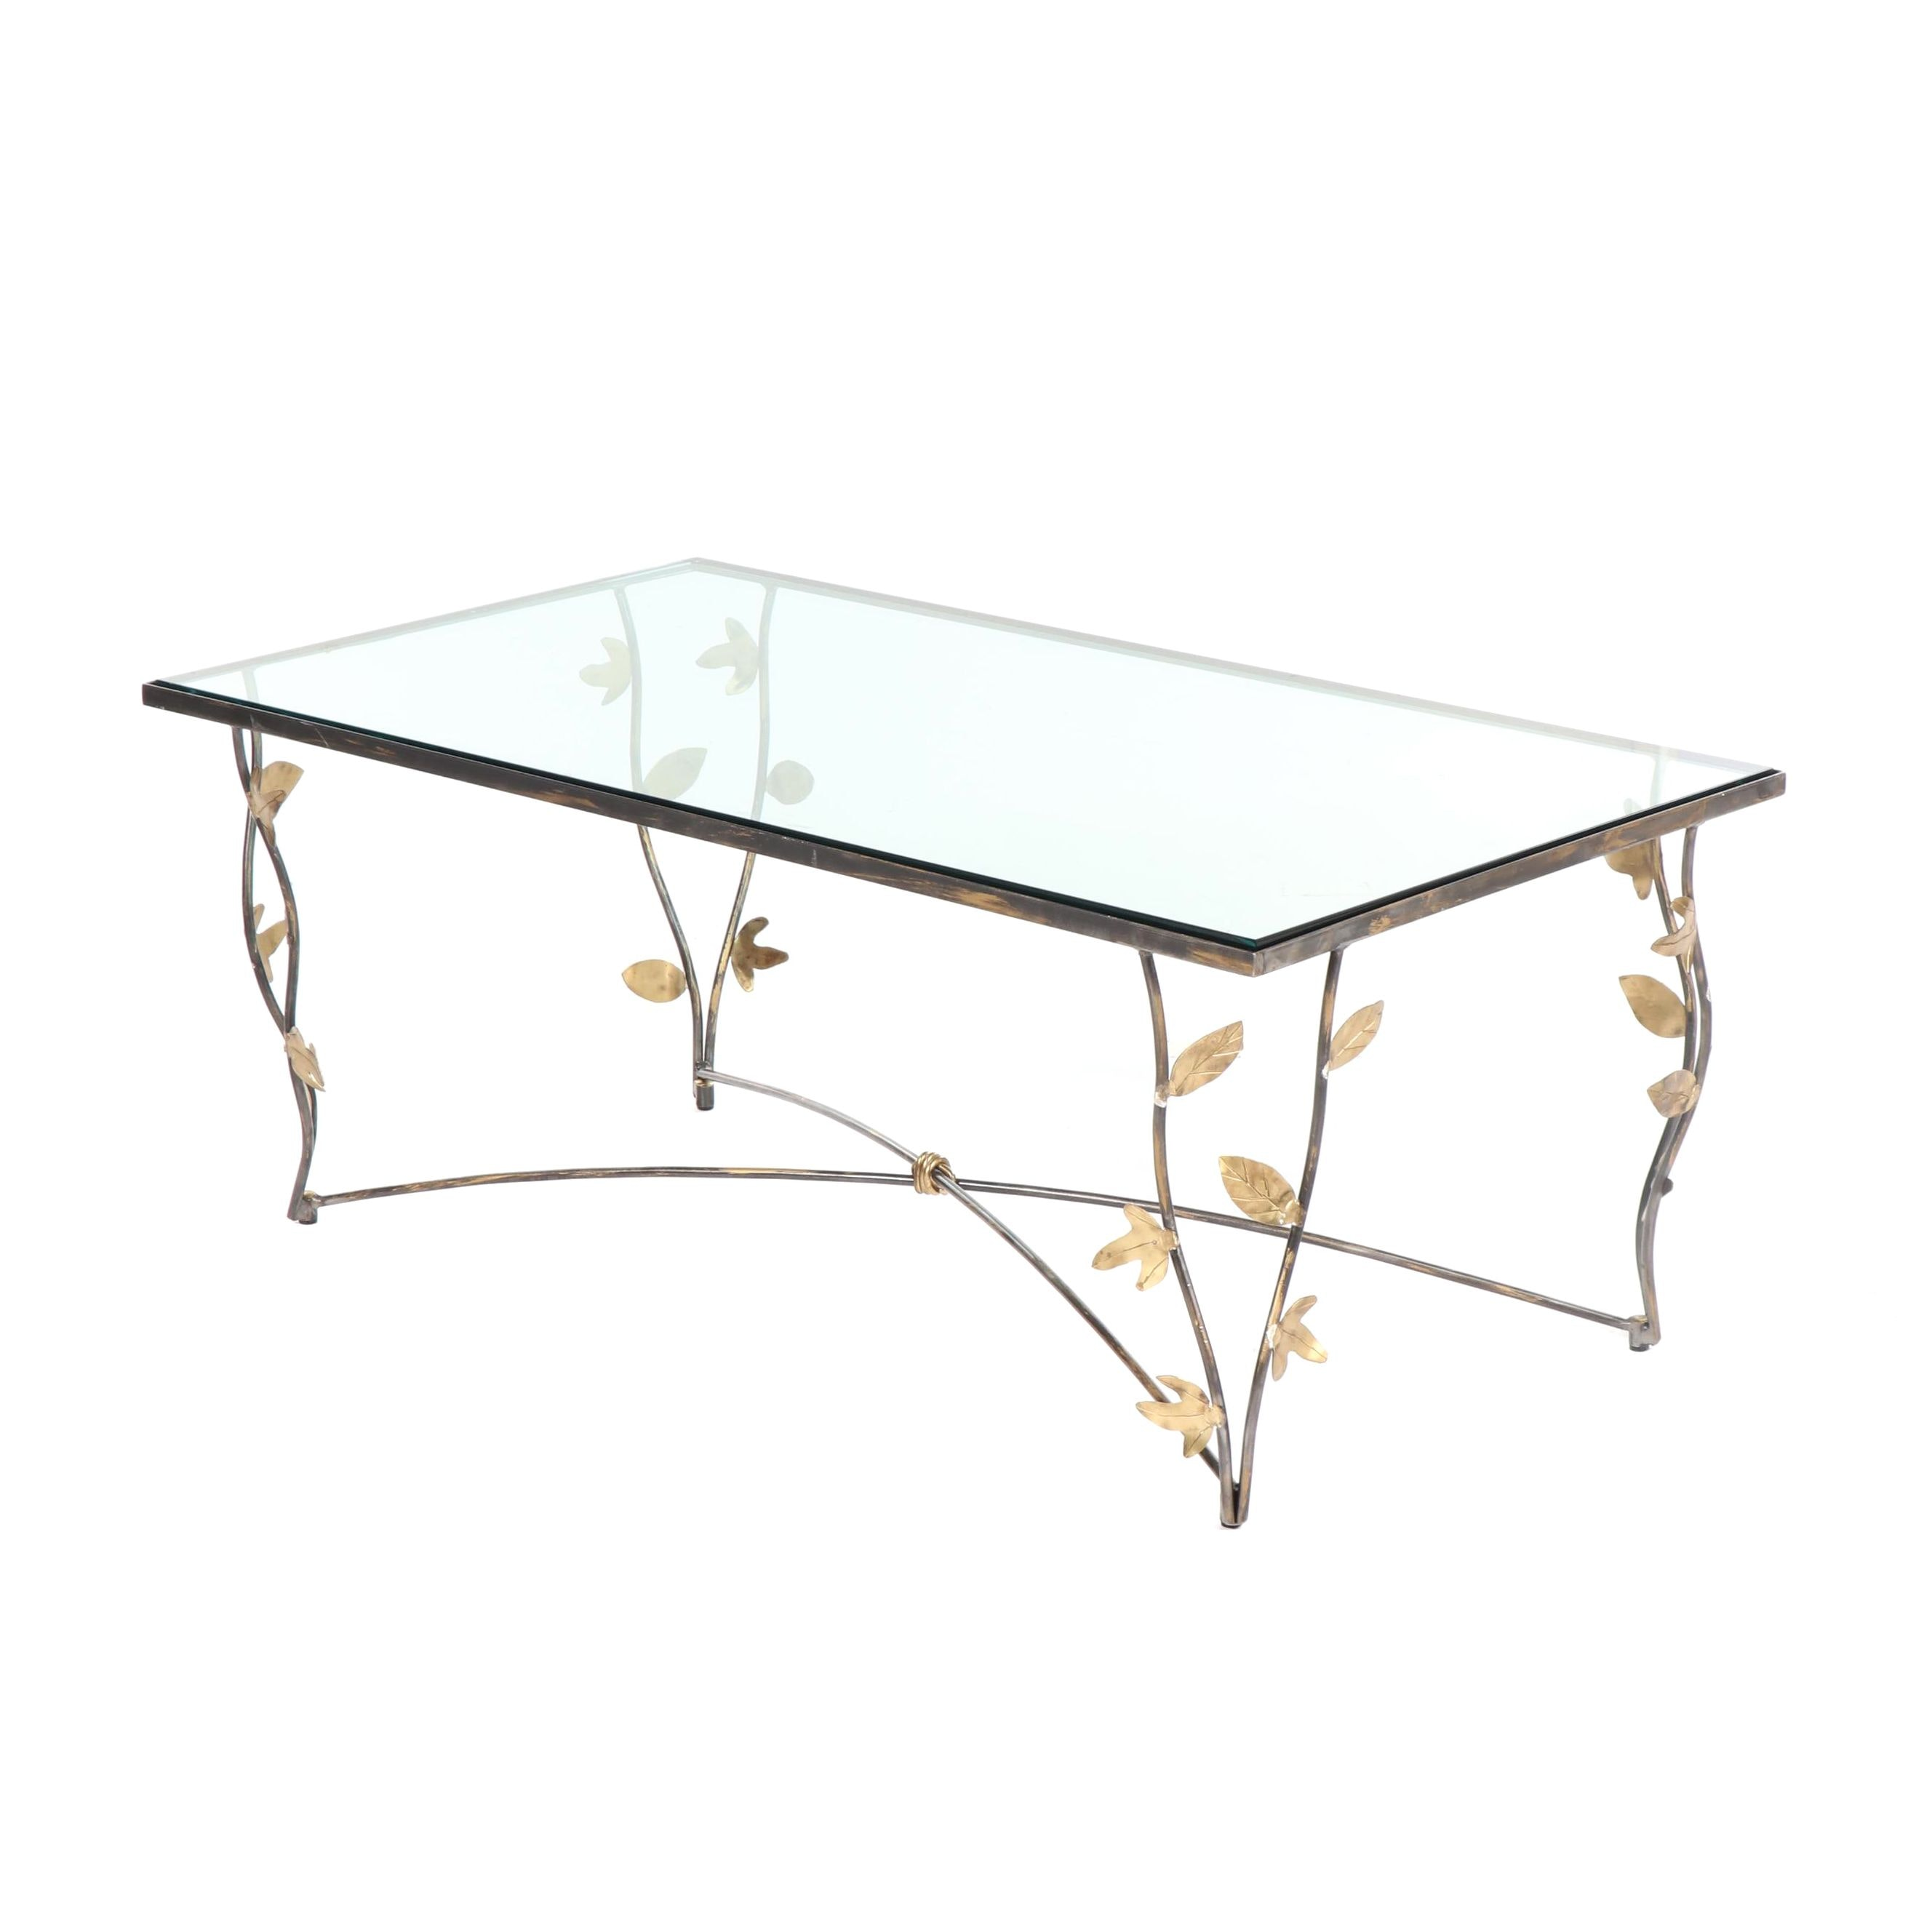 Metal and Glass Coffee Table, 21st Century